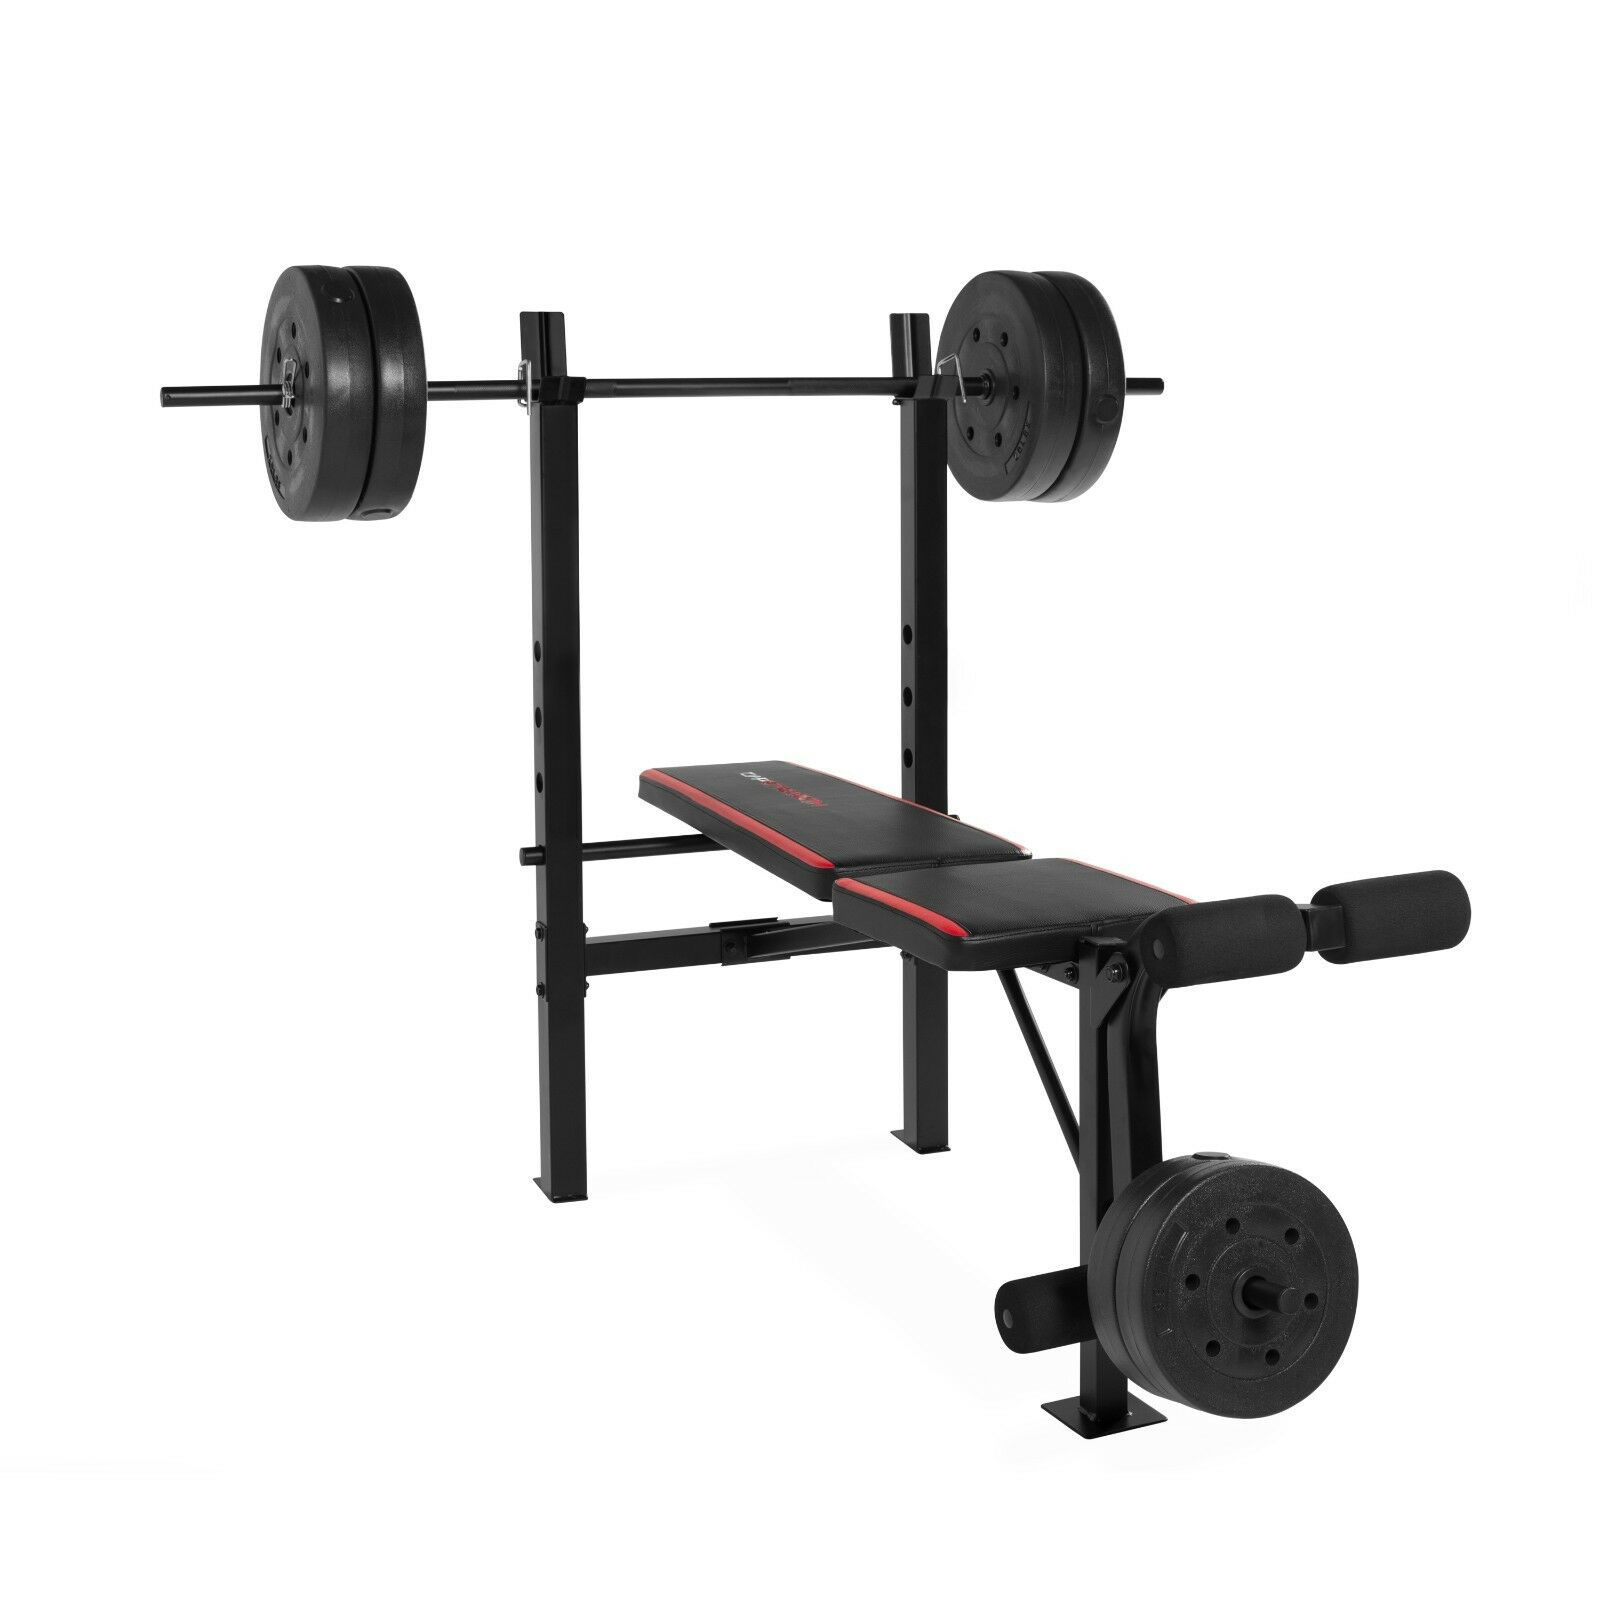 Weight Bench Set w  100 lb of Weights, Bar, Collars - FREE SHIPPING ROM USA